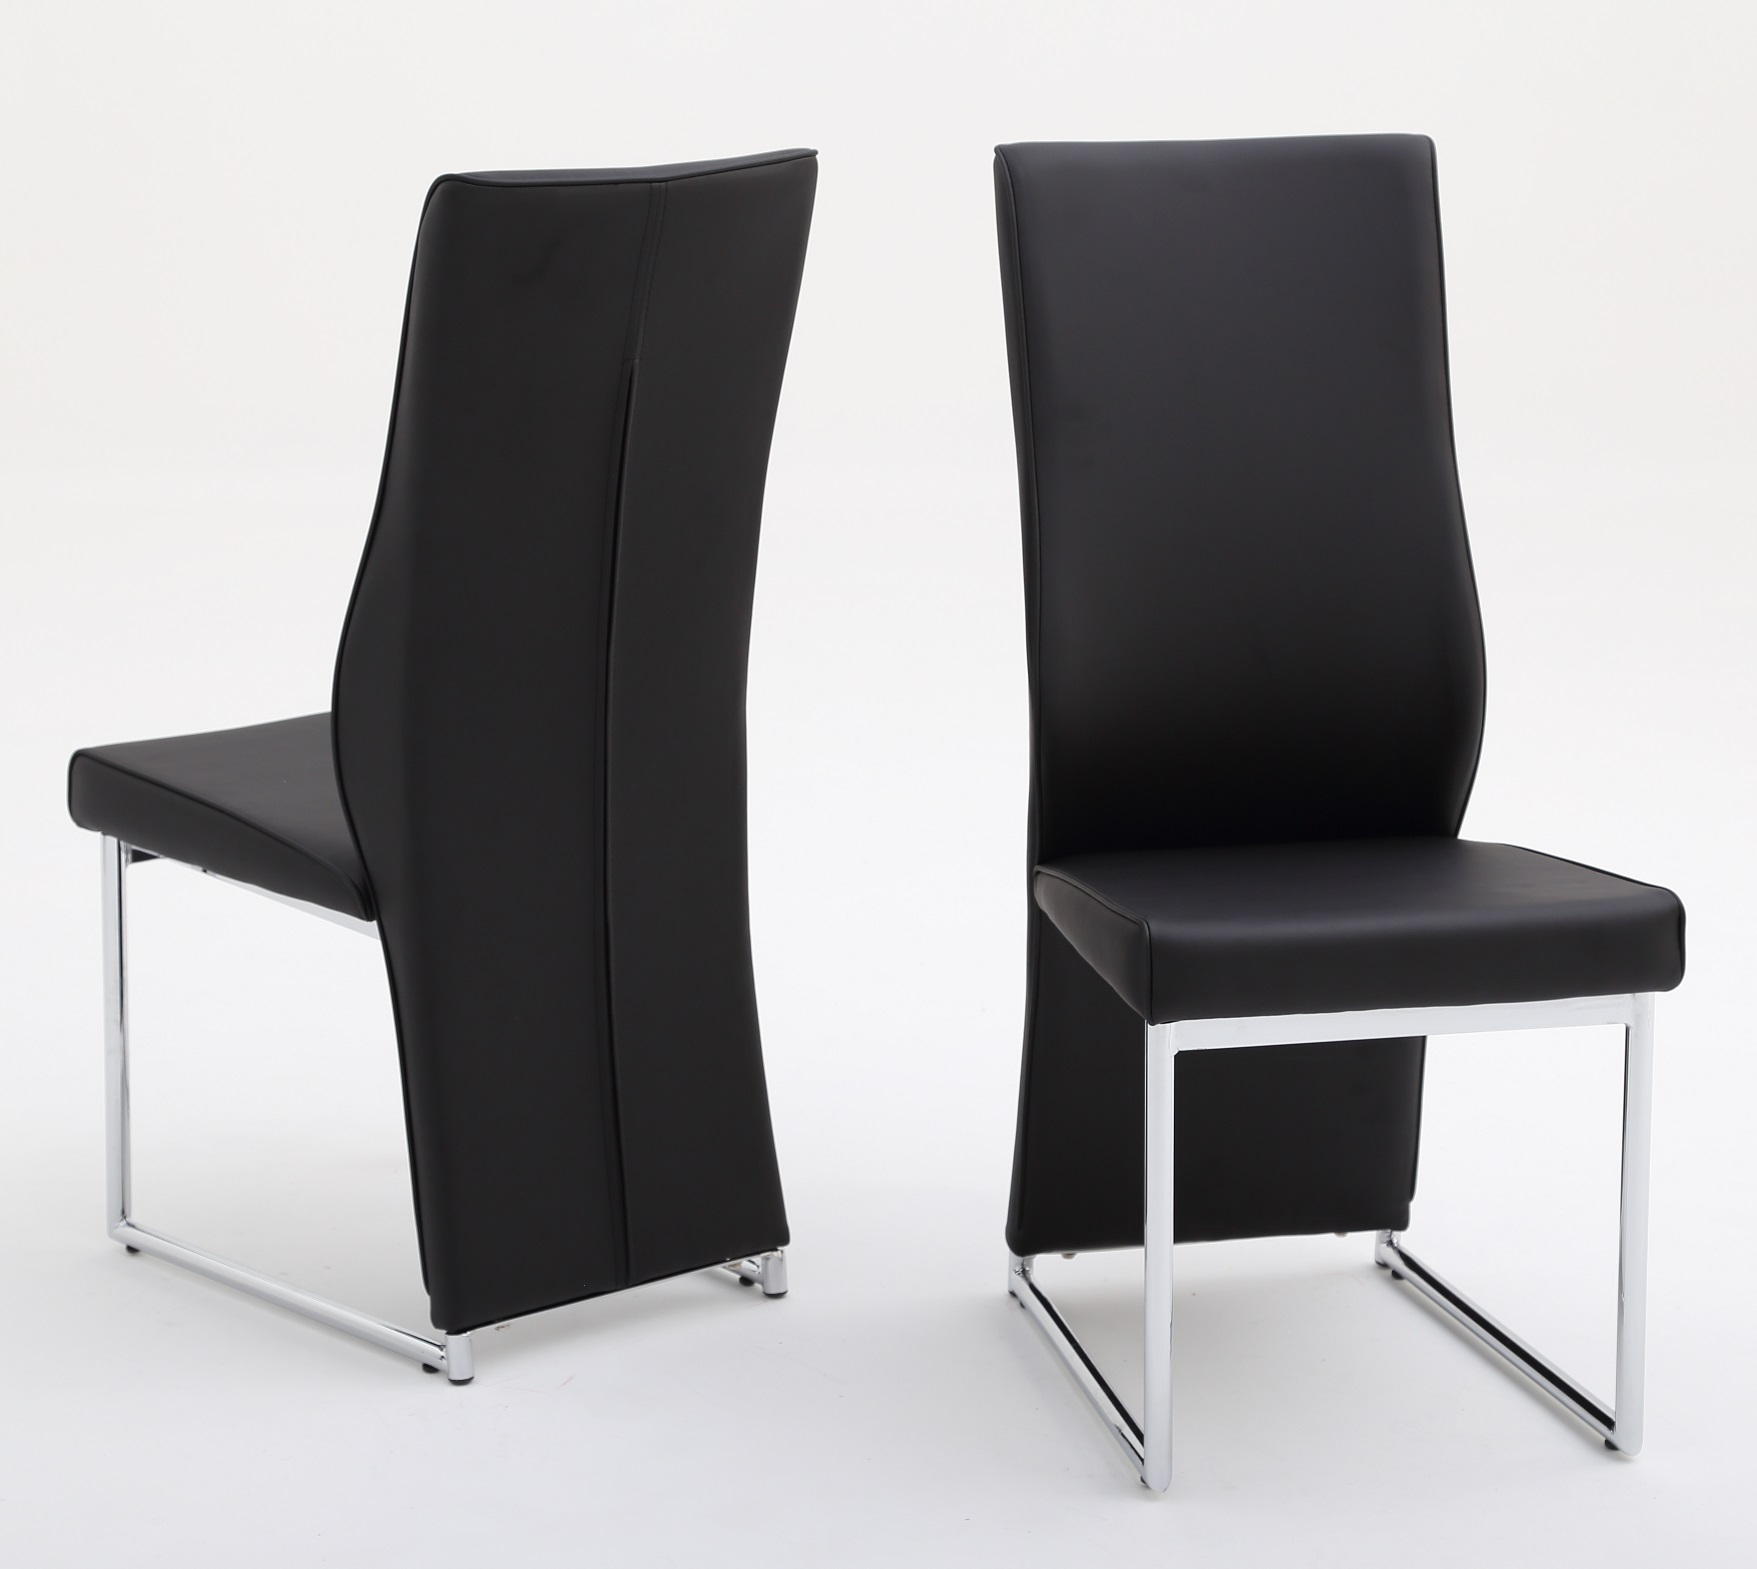 https://www.firstfurniture.co.uk/pub/media/catalog/product/r/e/remo_chair_black.jpg